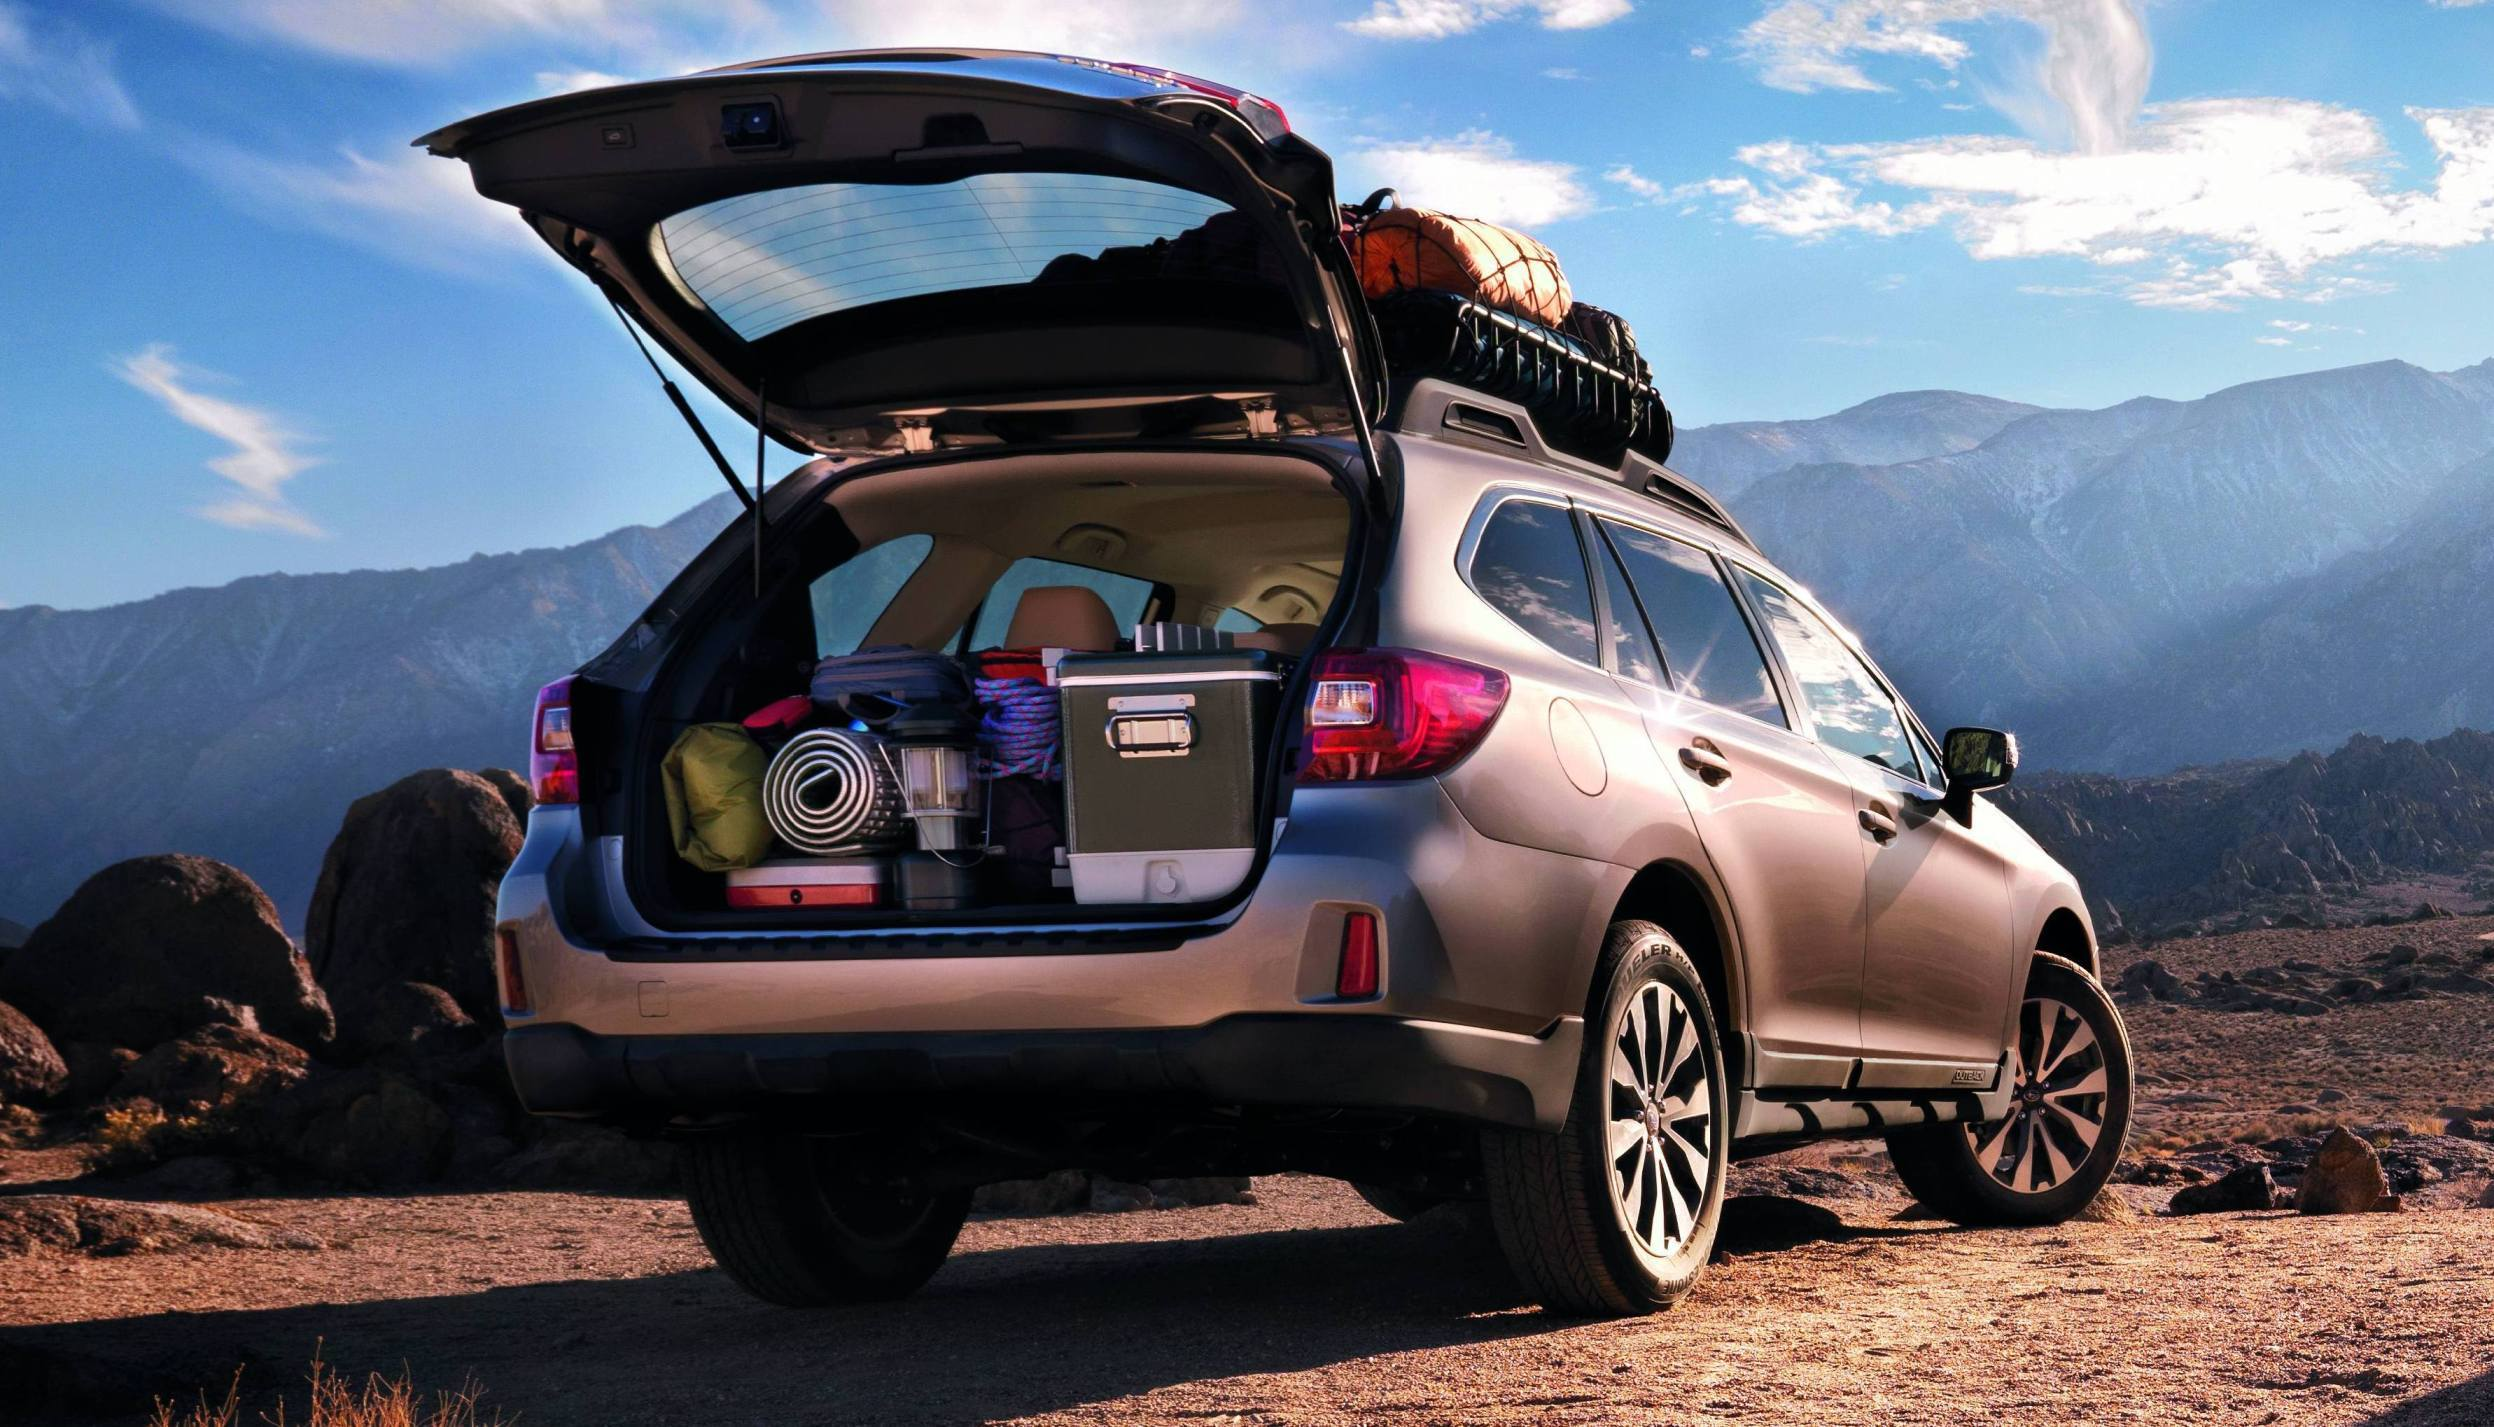 2015 subaru outback is all new with better mpg and refinement turbo xt or non cvt both missing. Black Bedroom Furniture Sets. Home Design Ideas